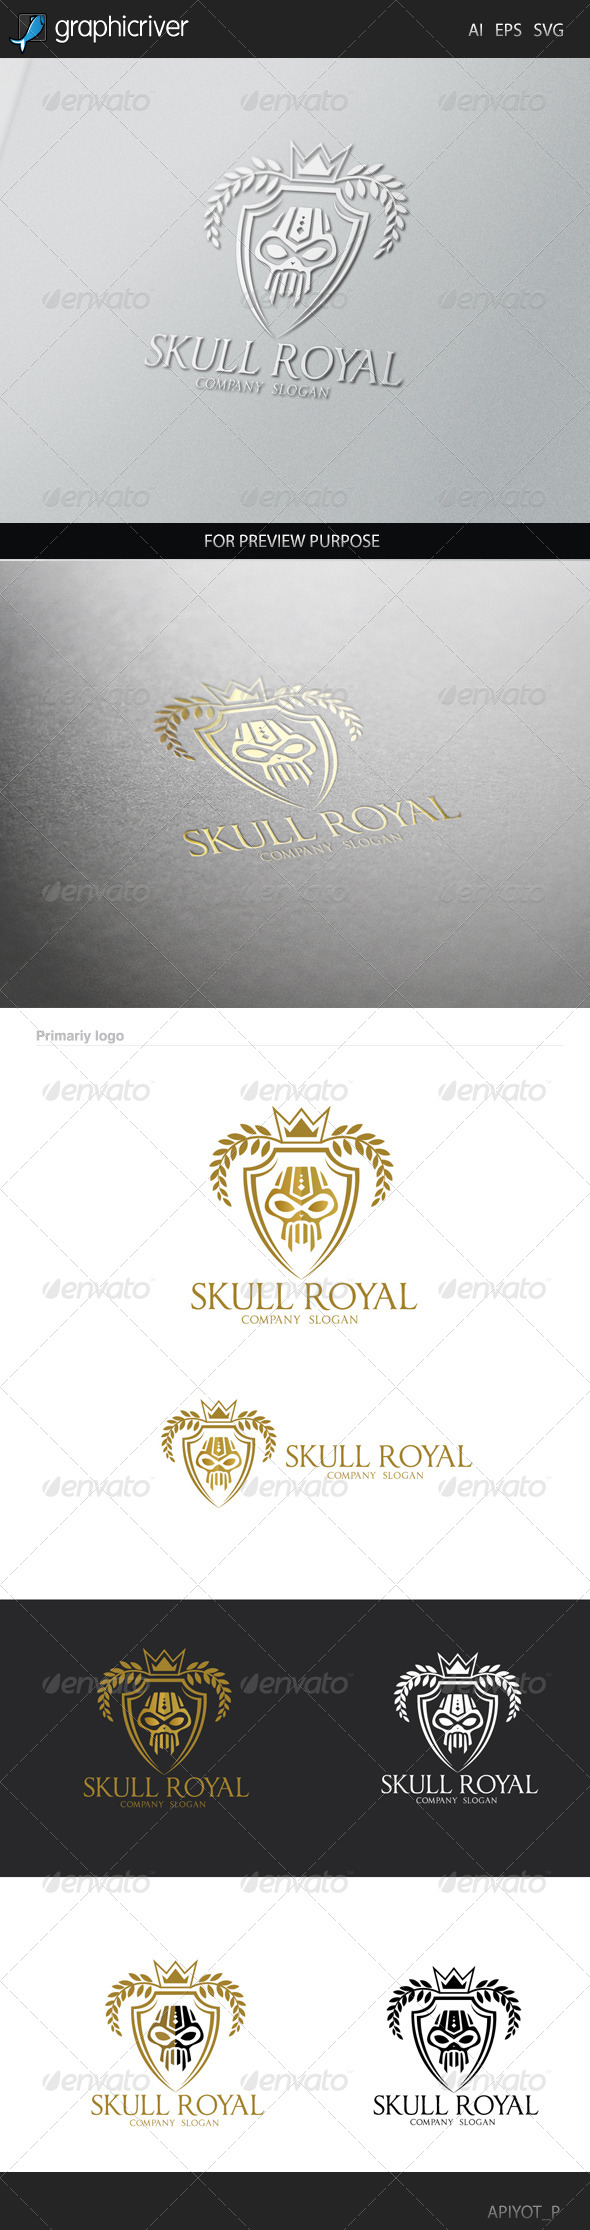 GraphicRiver Skull Royal Logo 8505943